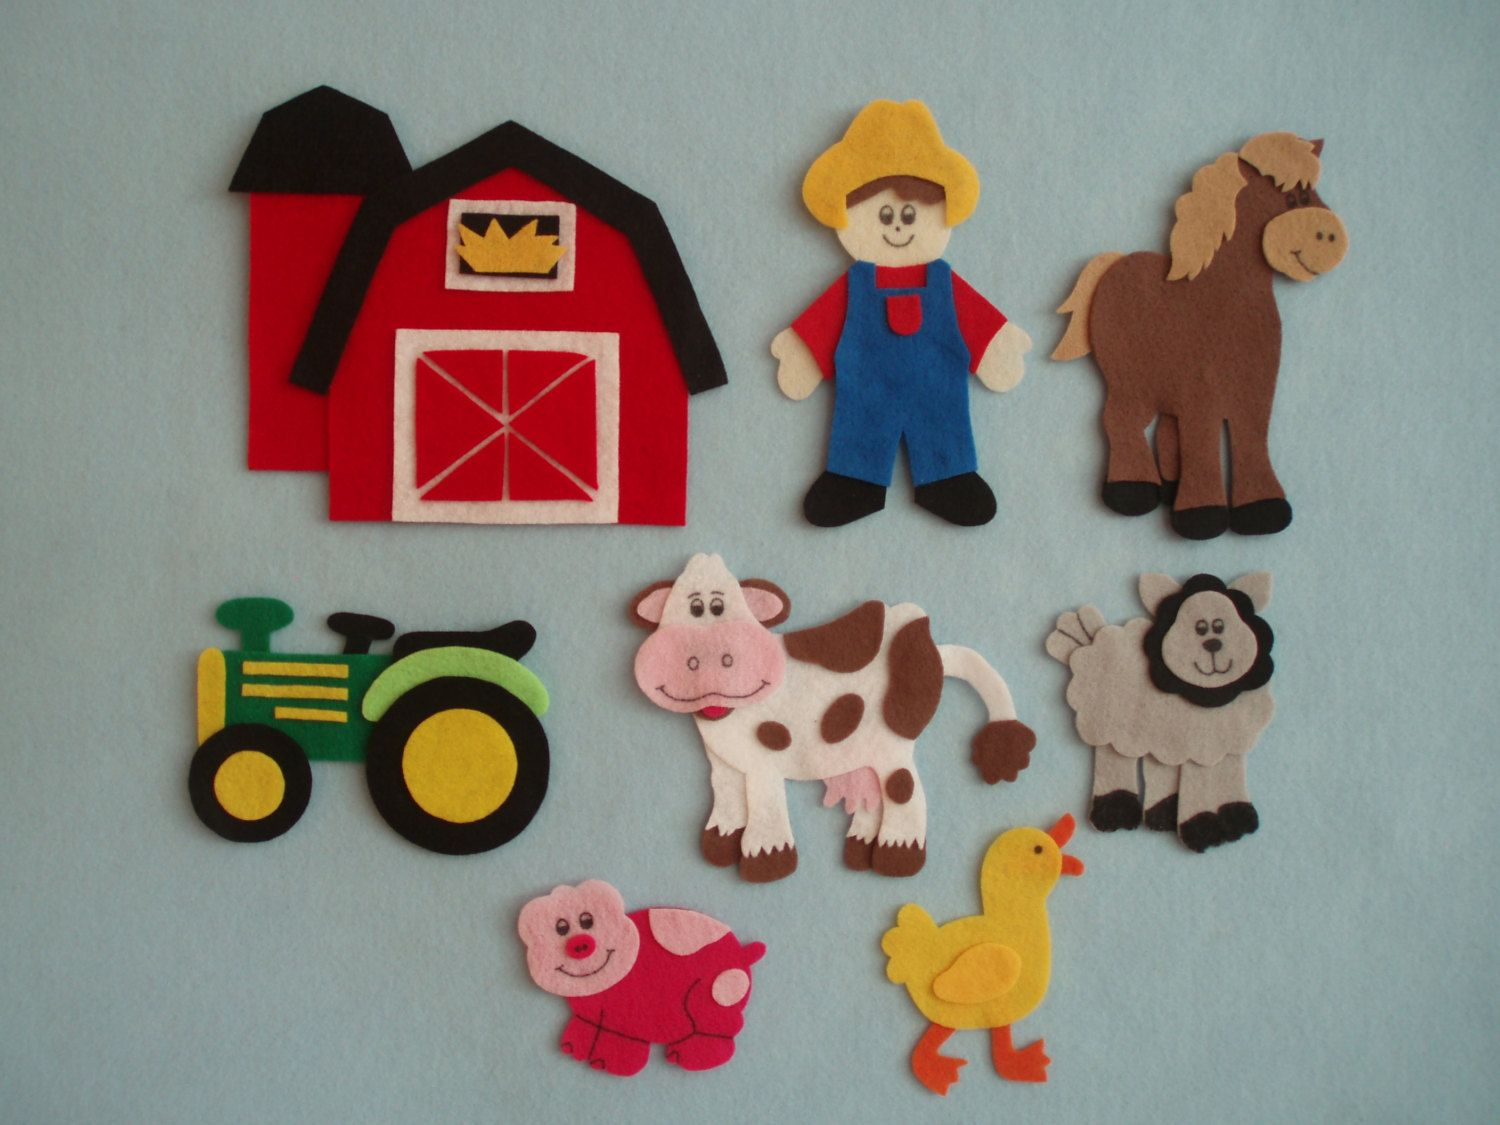 graphic about Printable Felt Board Stories called Upon McDonalds Farm felt tale printable templates - Google